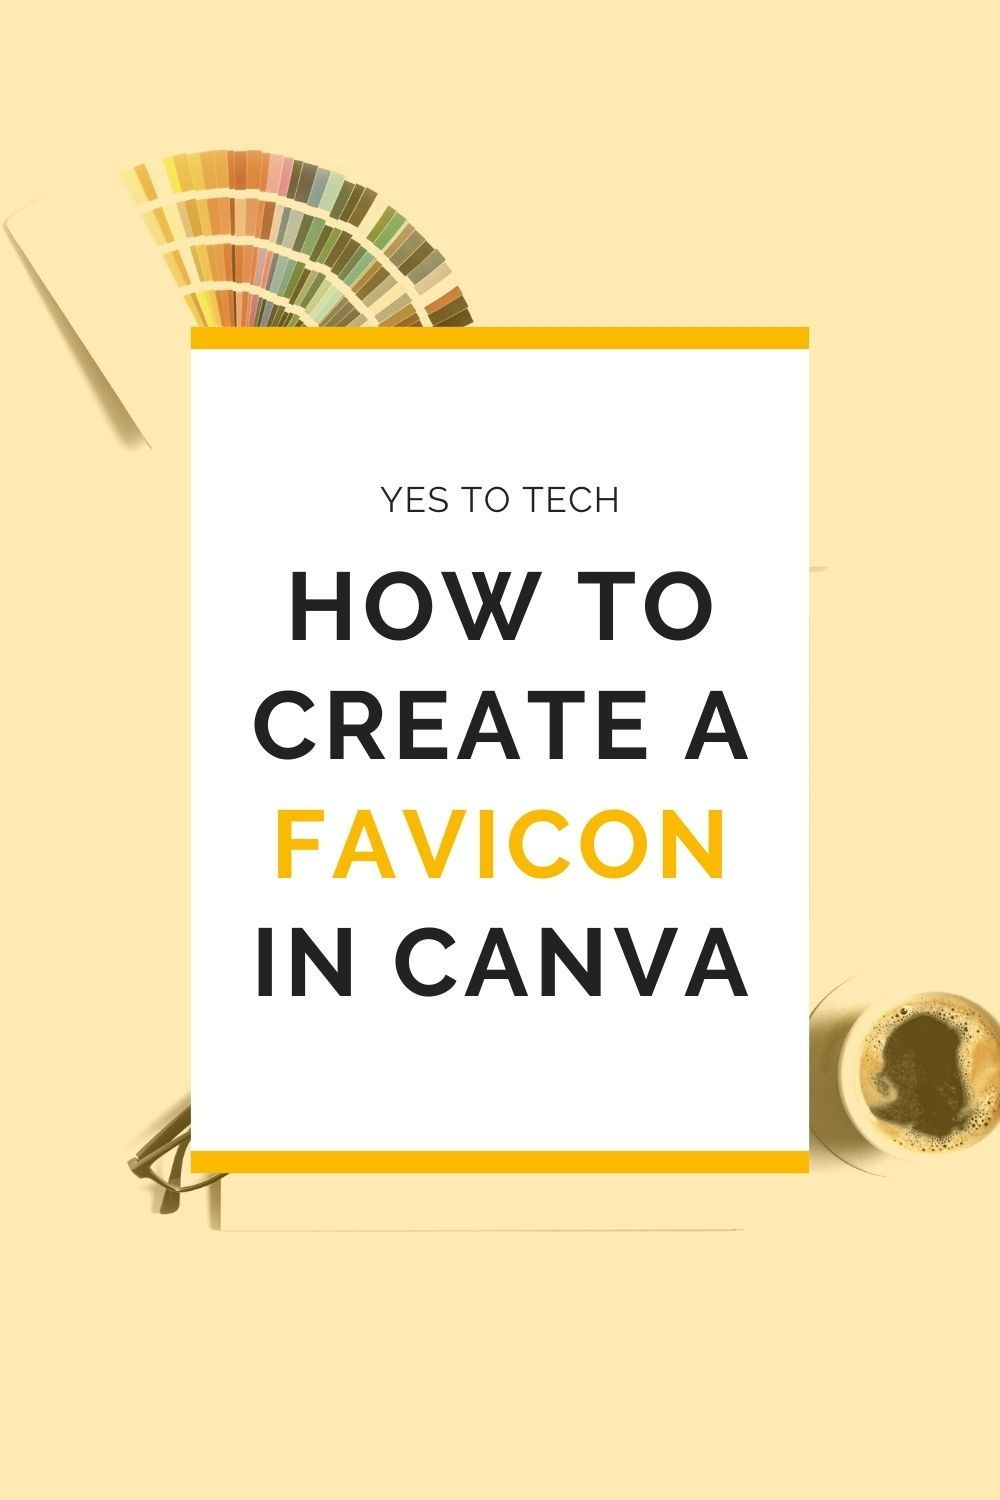 How To Create A Favicon With Canva Canva Tutorial Branding Website Design Graphic Design Tools